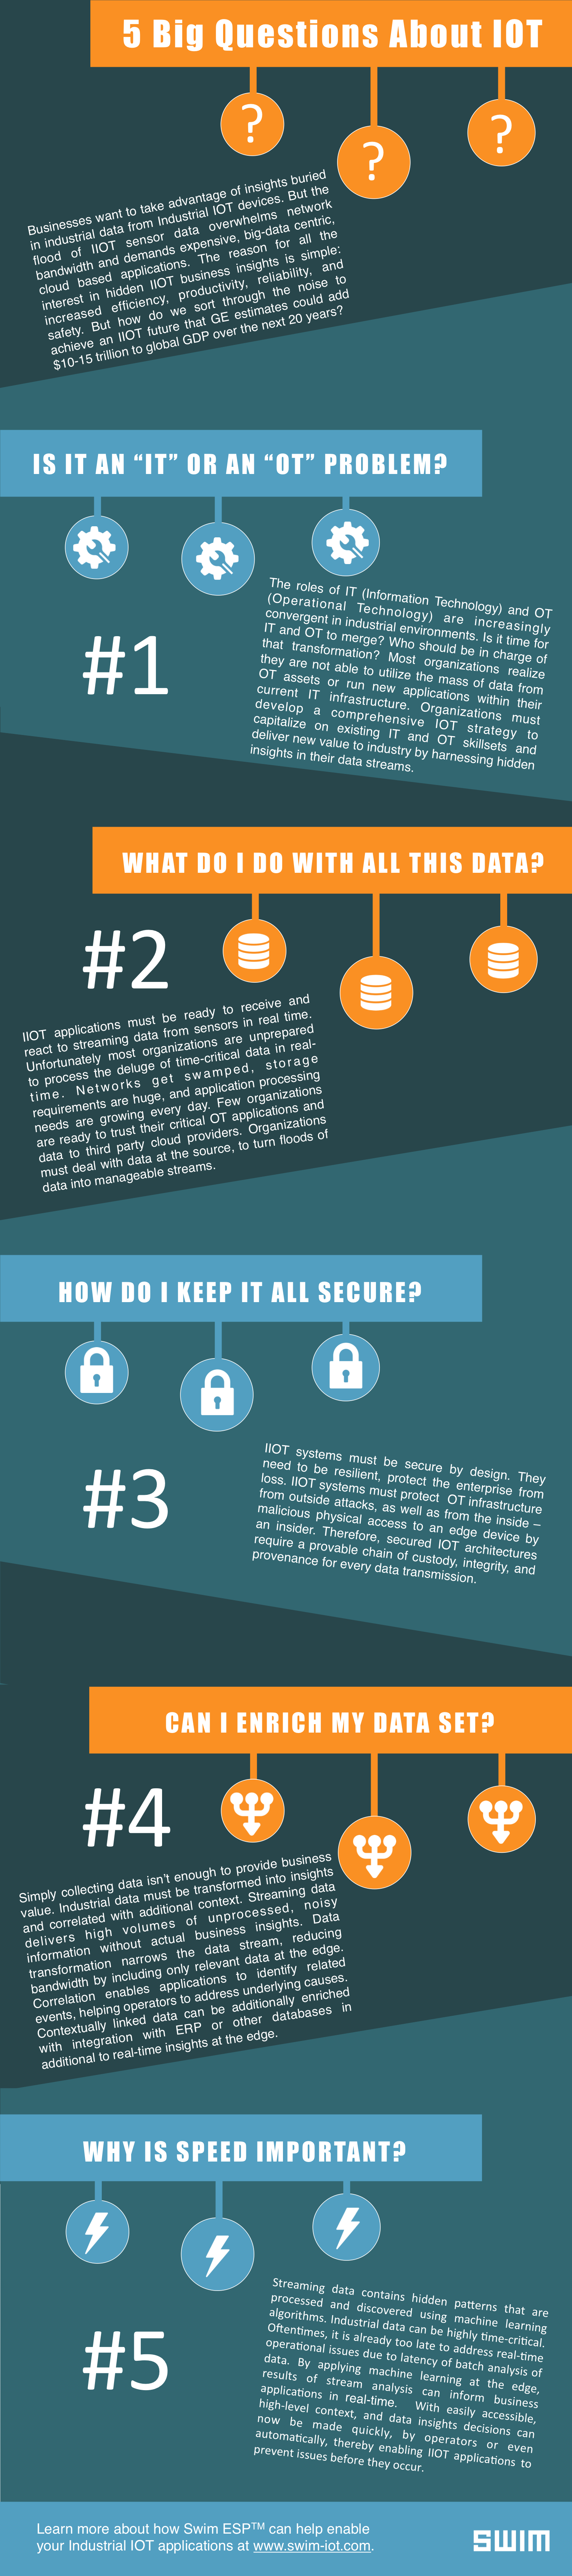 Swim_Five Big Questions About Industrial IOT_Infographic